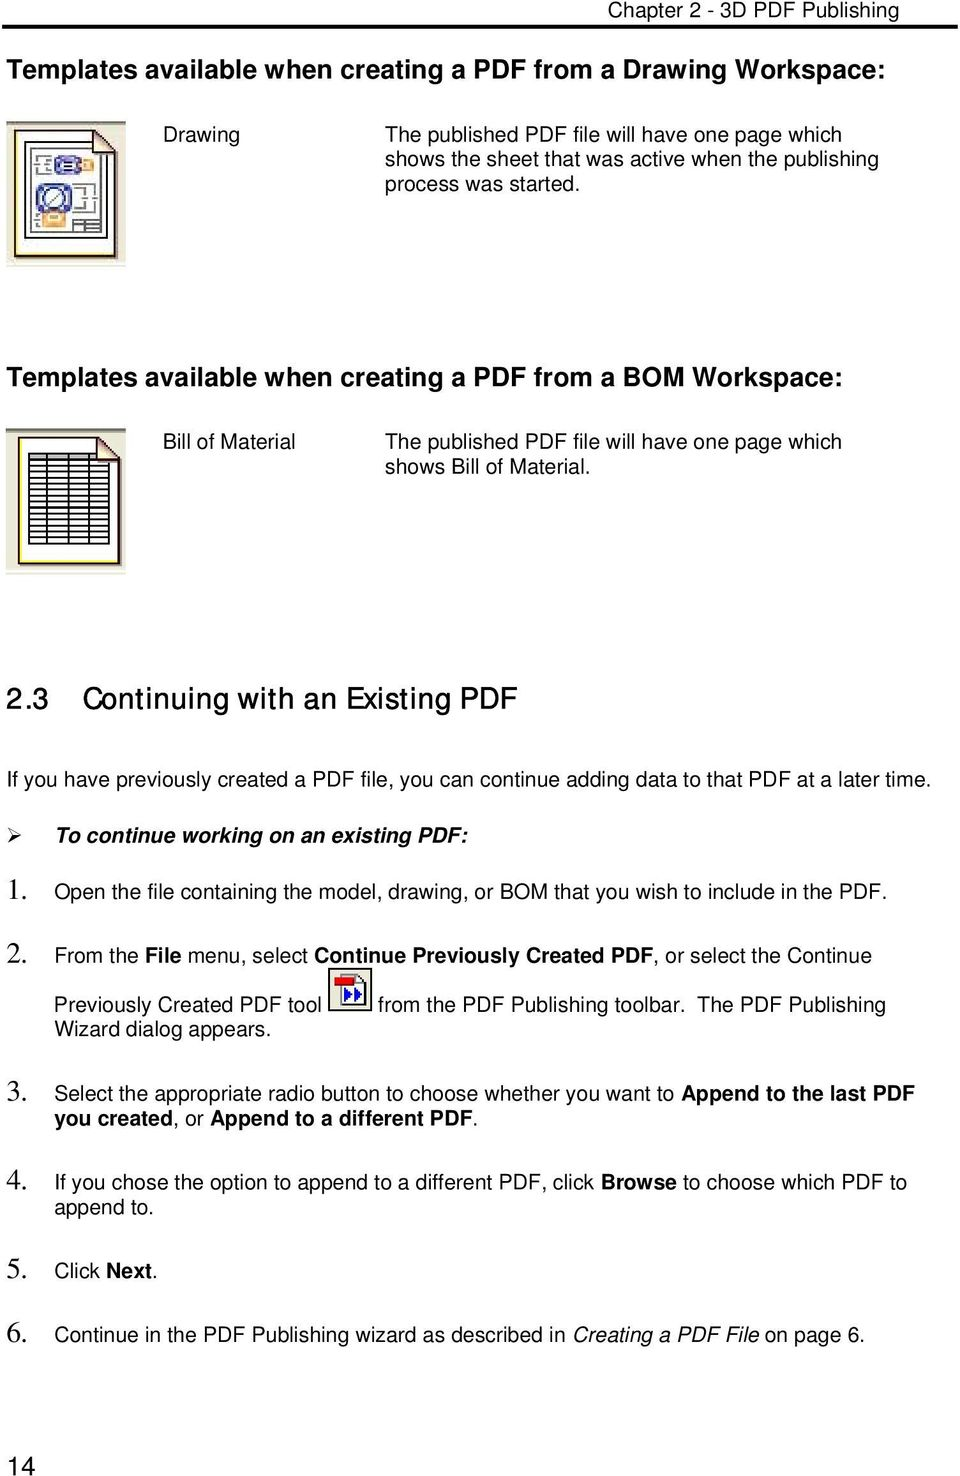 3 Continuing with an Existing PDF If you have previously created a PDF file, you can continue adding data to that PDF at a later time. To continue working on an existing PDF: 1.